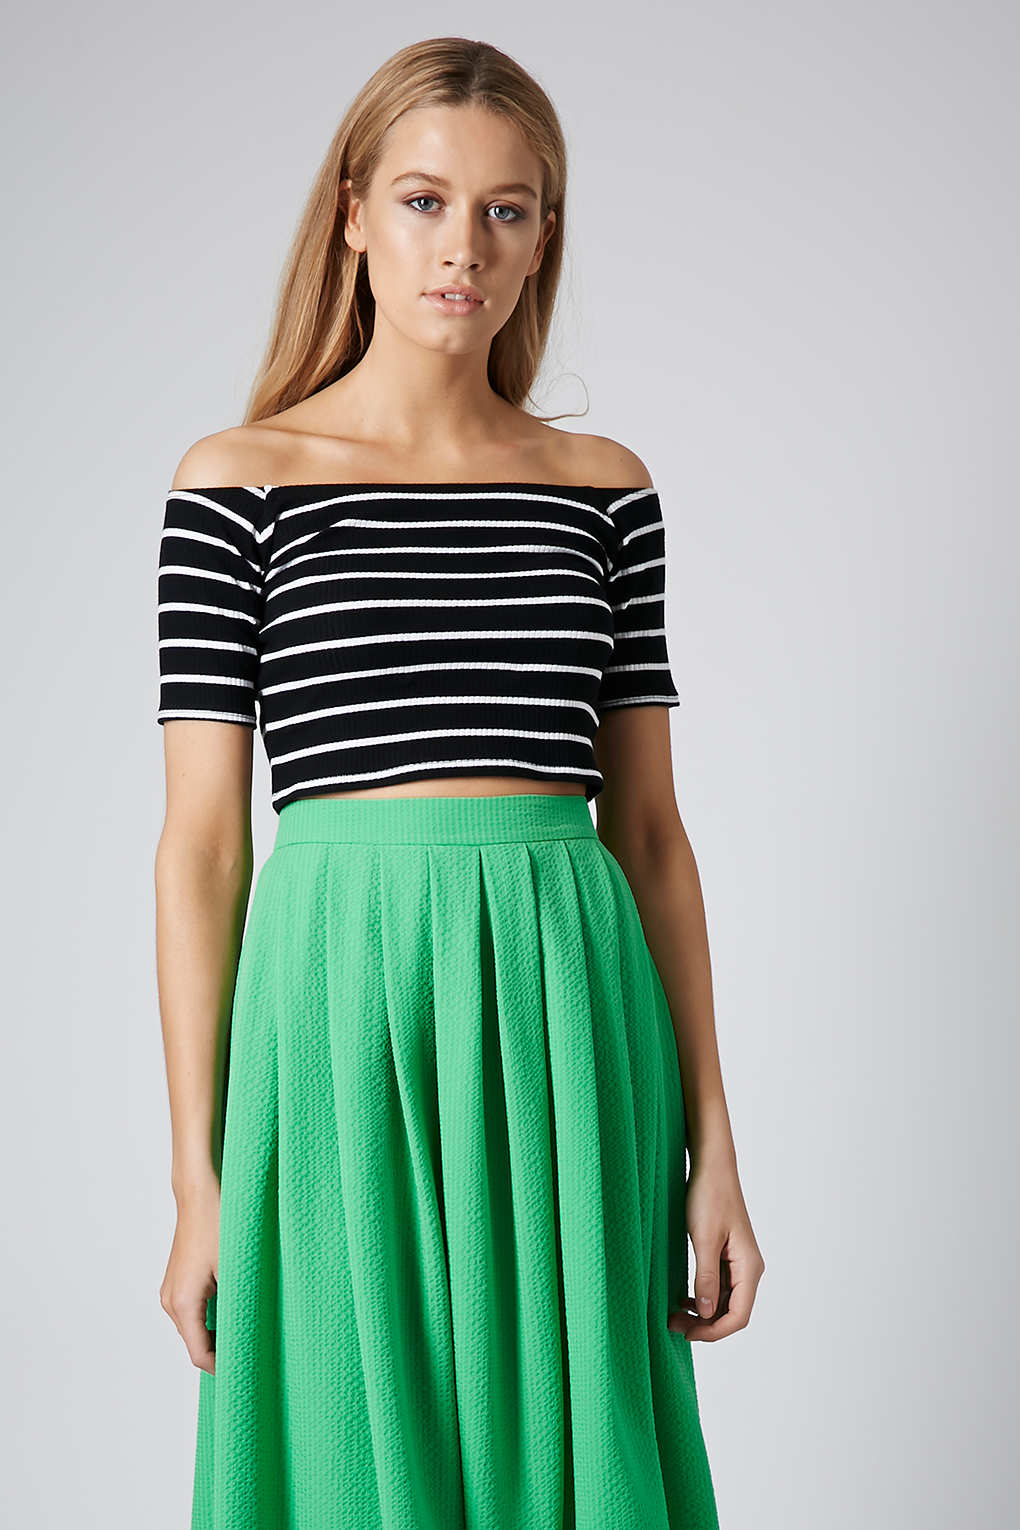 Ribbed Bardot top, Topshop, £12